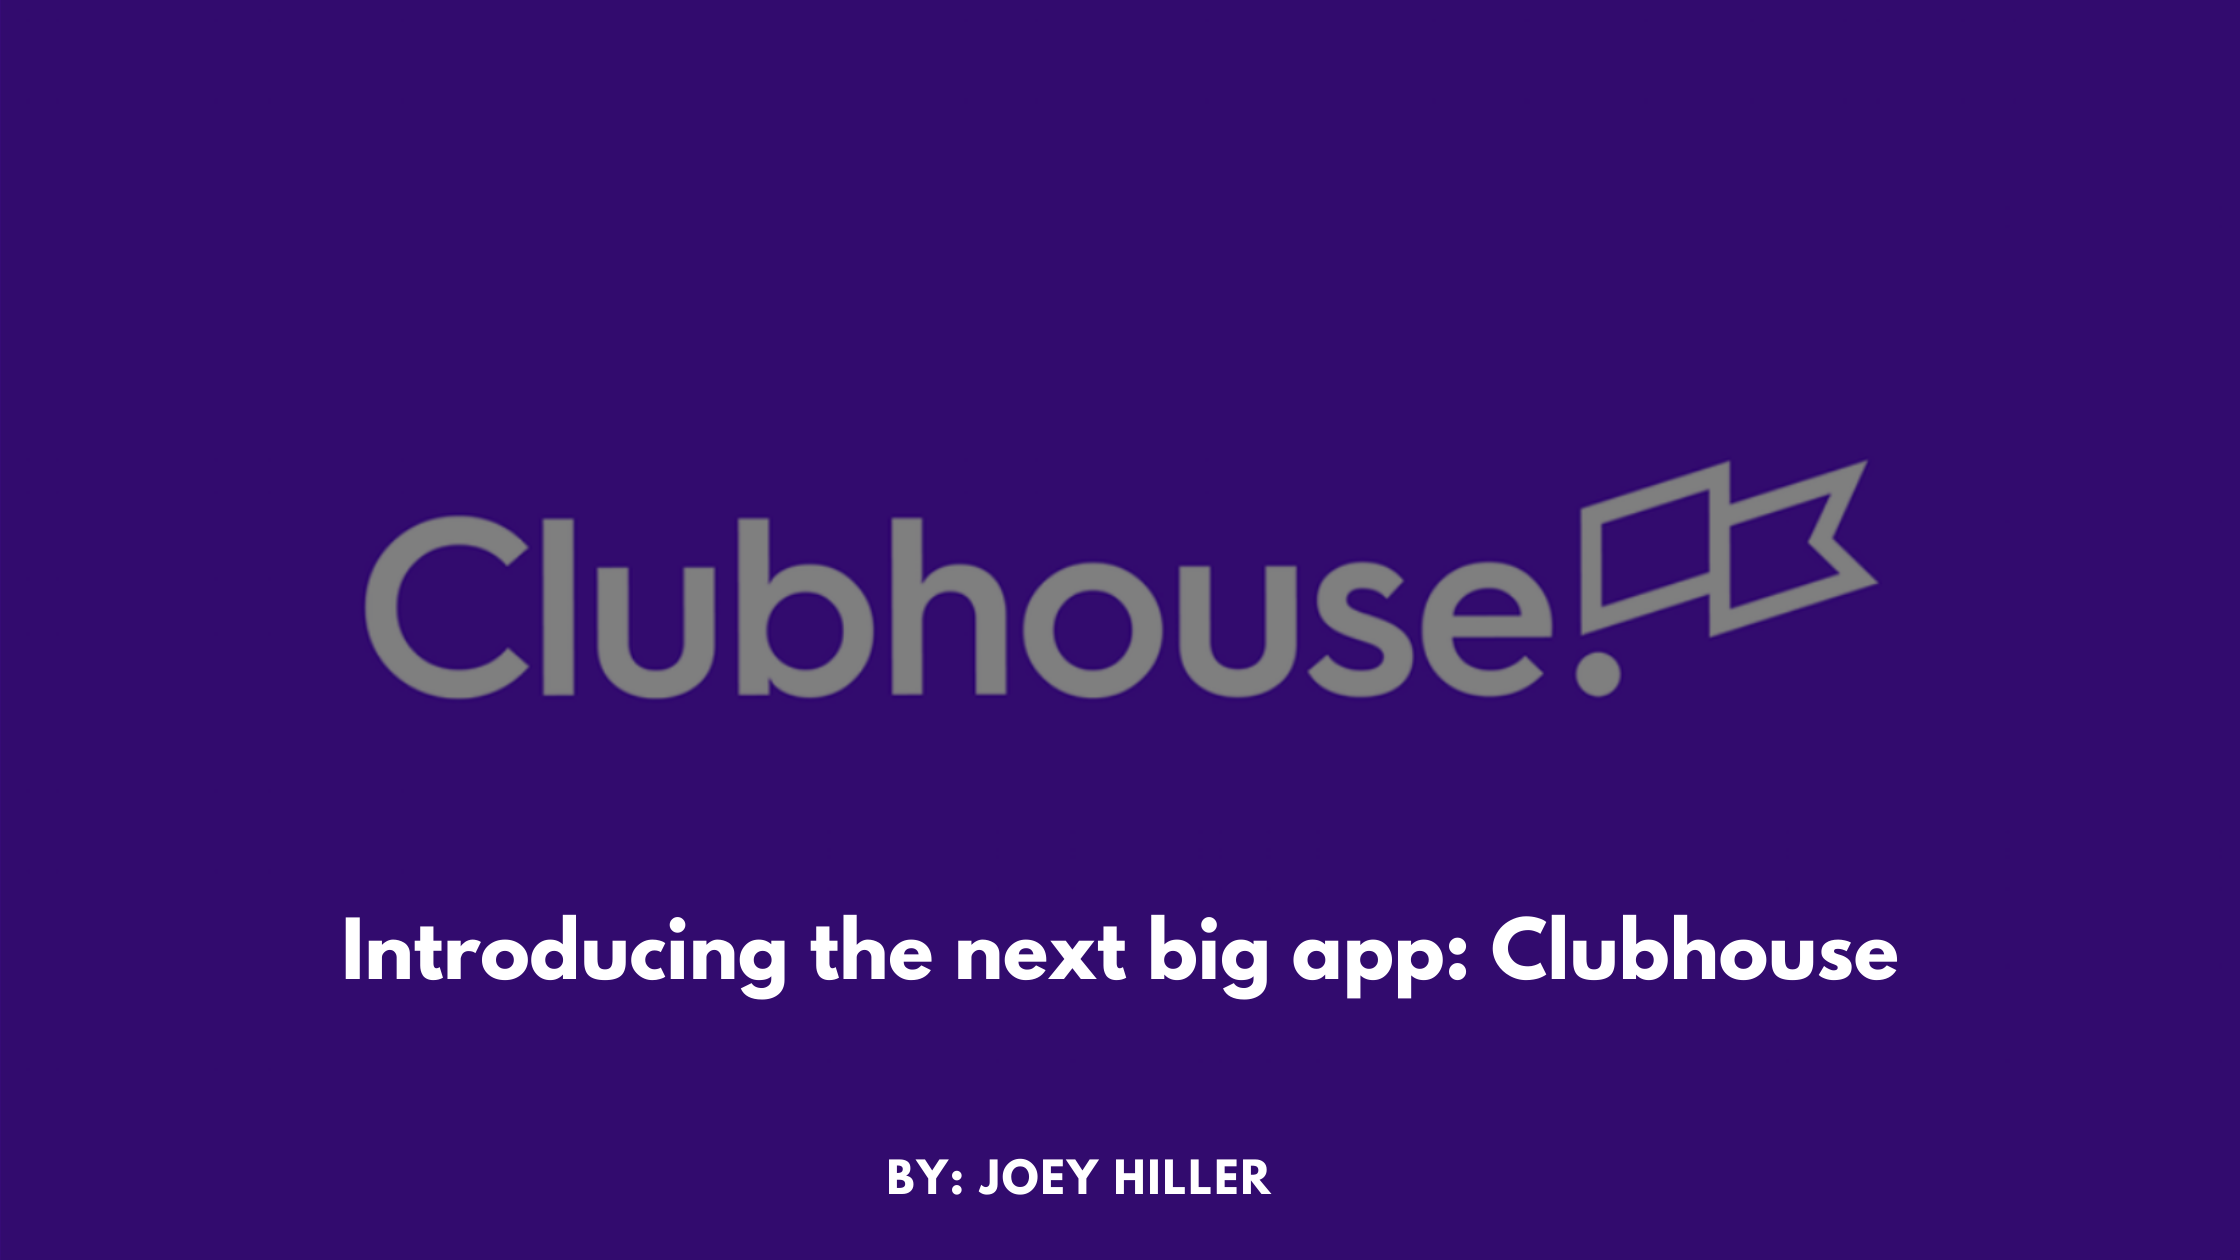 Introducing the next big app: Clubhouse